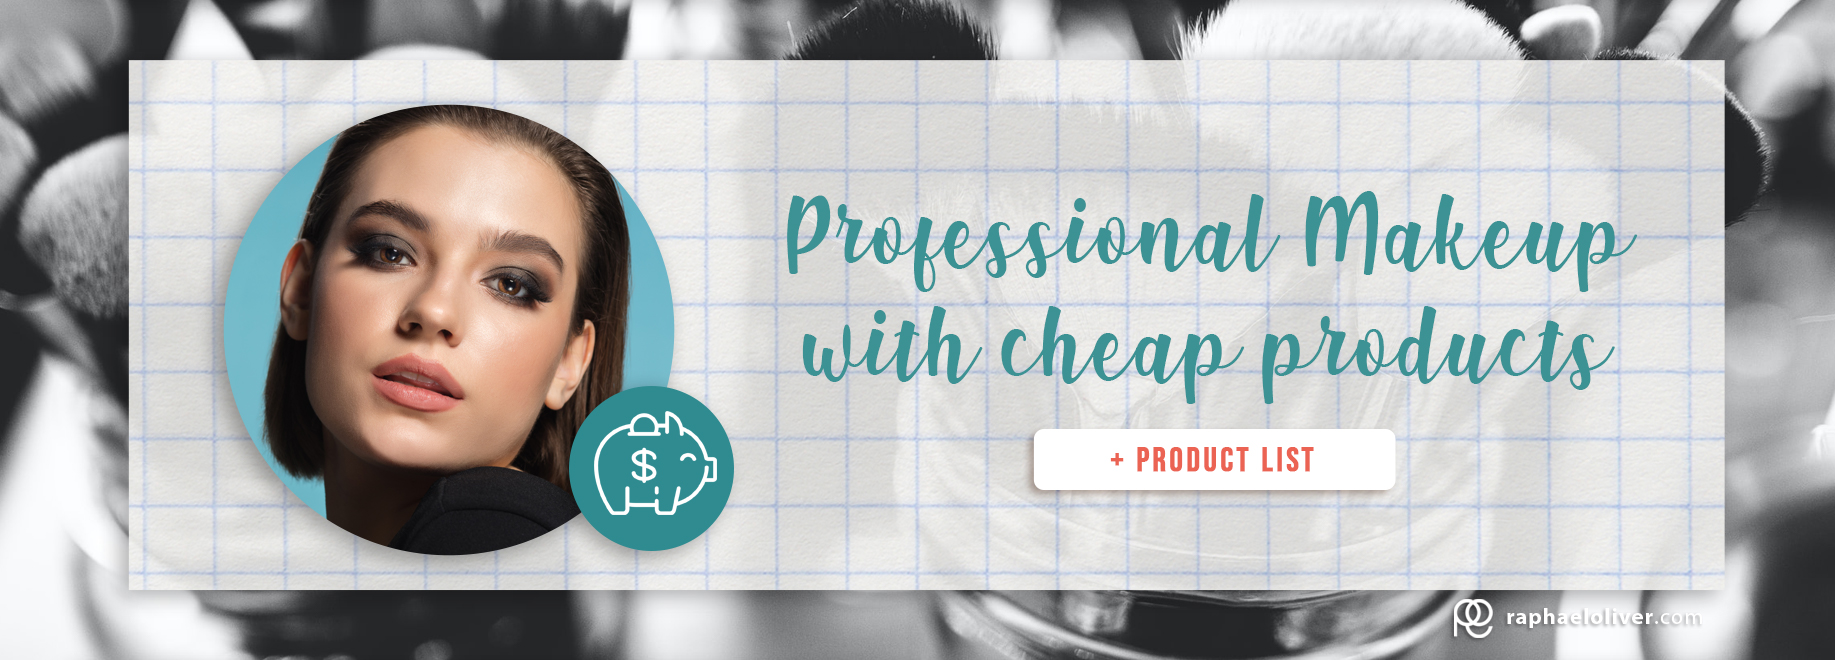 Professional makeup with cheap products